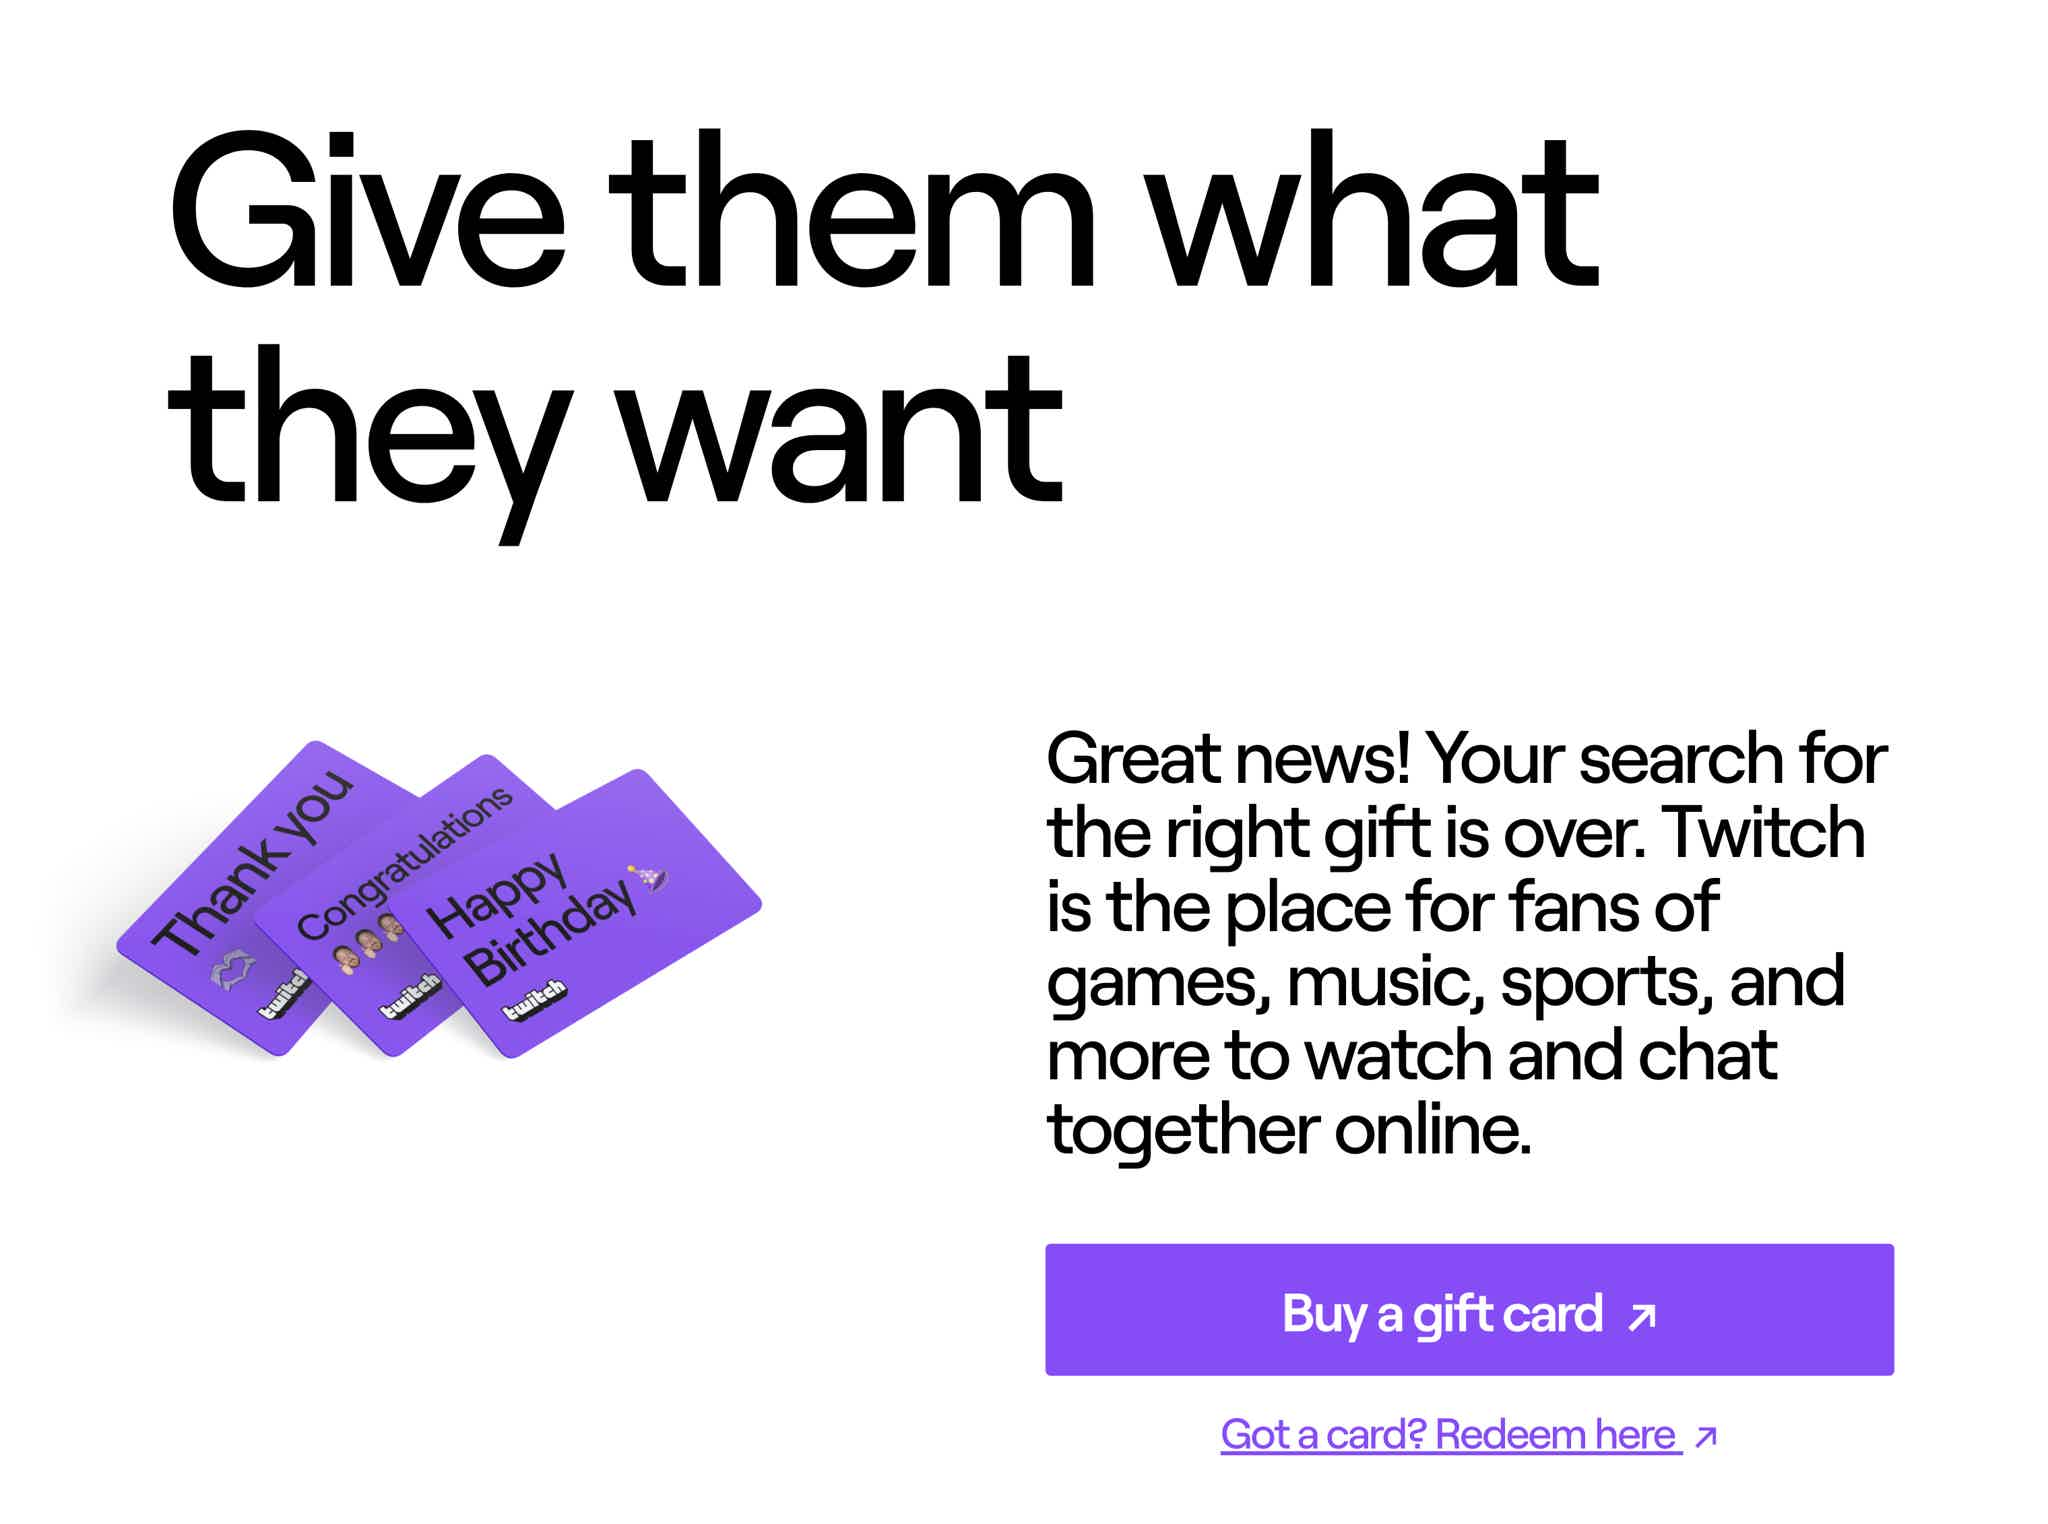 Twitch gift cards